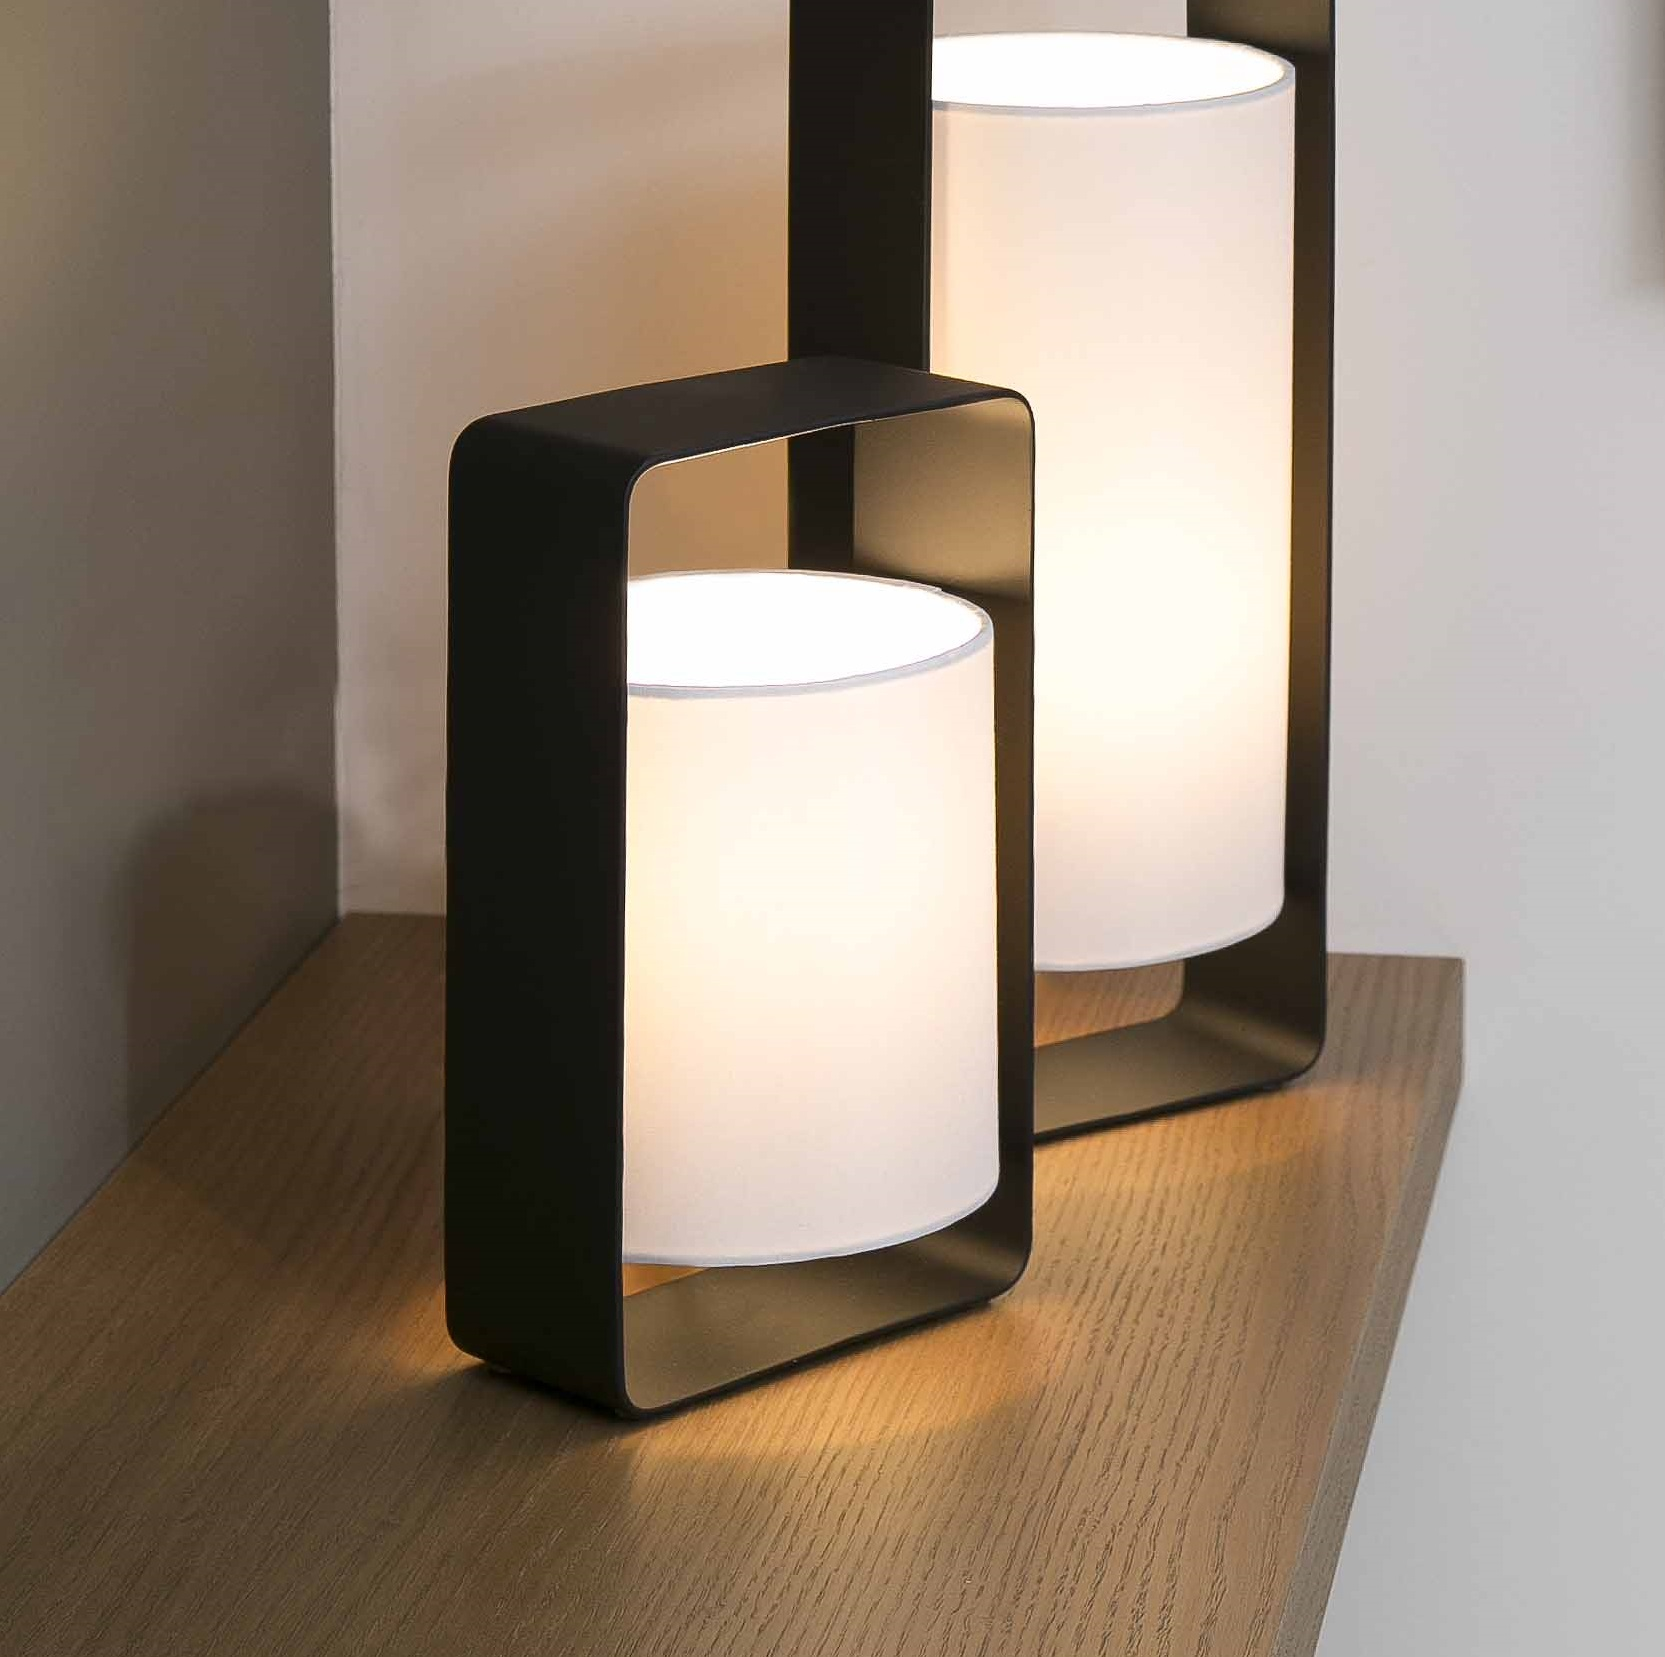 lampe poser lula noir et blanc h27cm faro luminaires nedgis. Black Bedroom Furniture Sets. Home Design Ideas